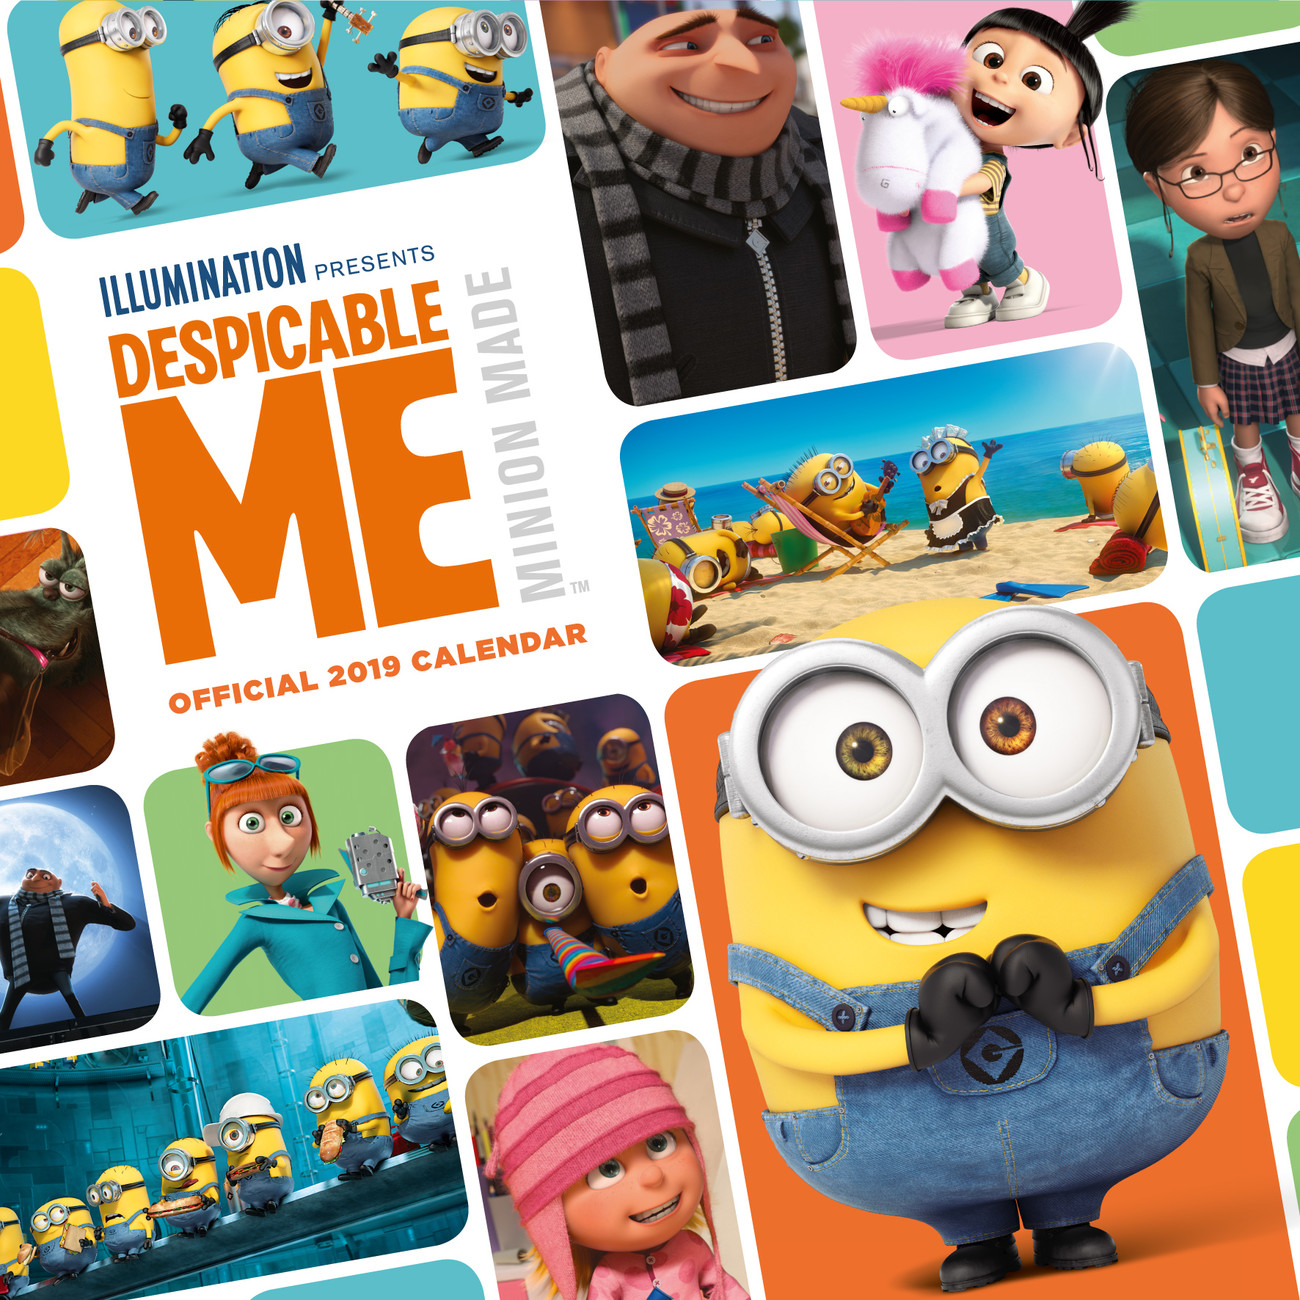 Despicable Me - Calendars 2020 on UKposters/EuroPosters